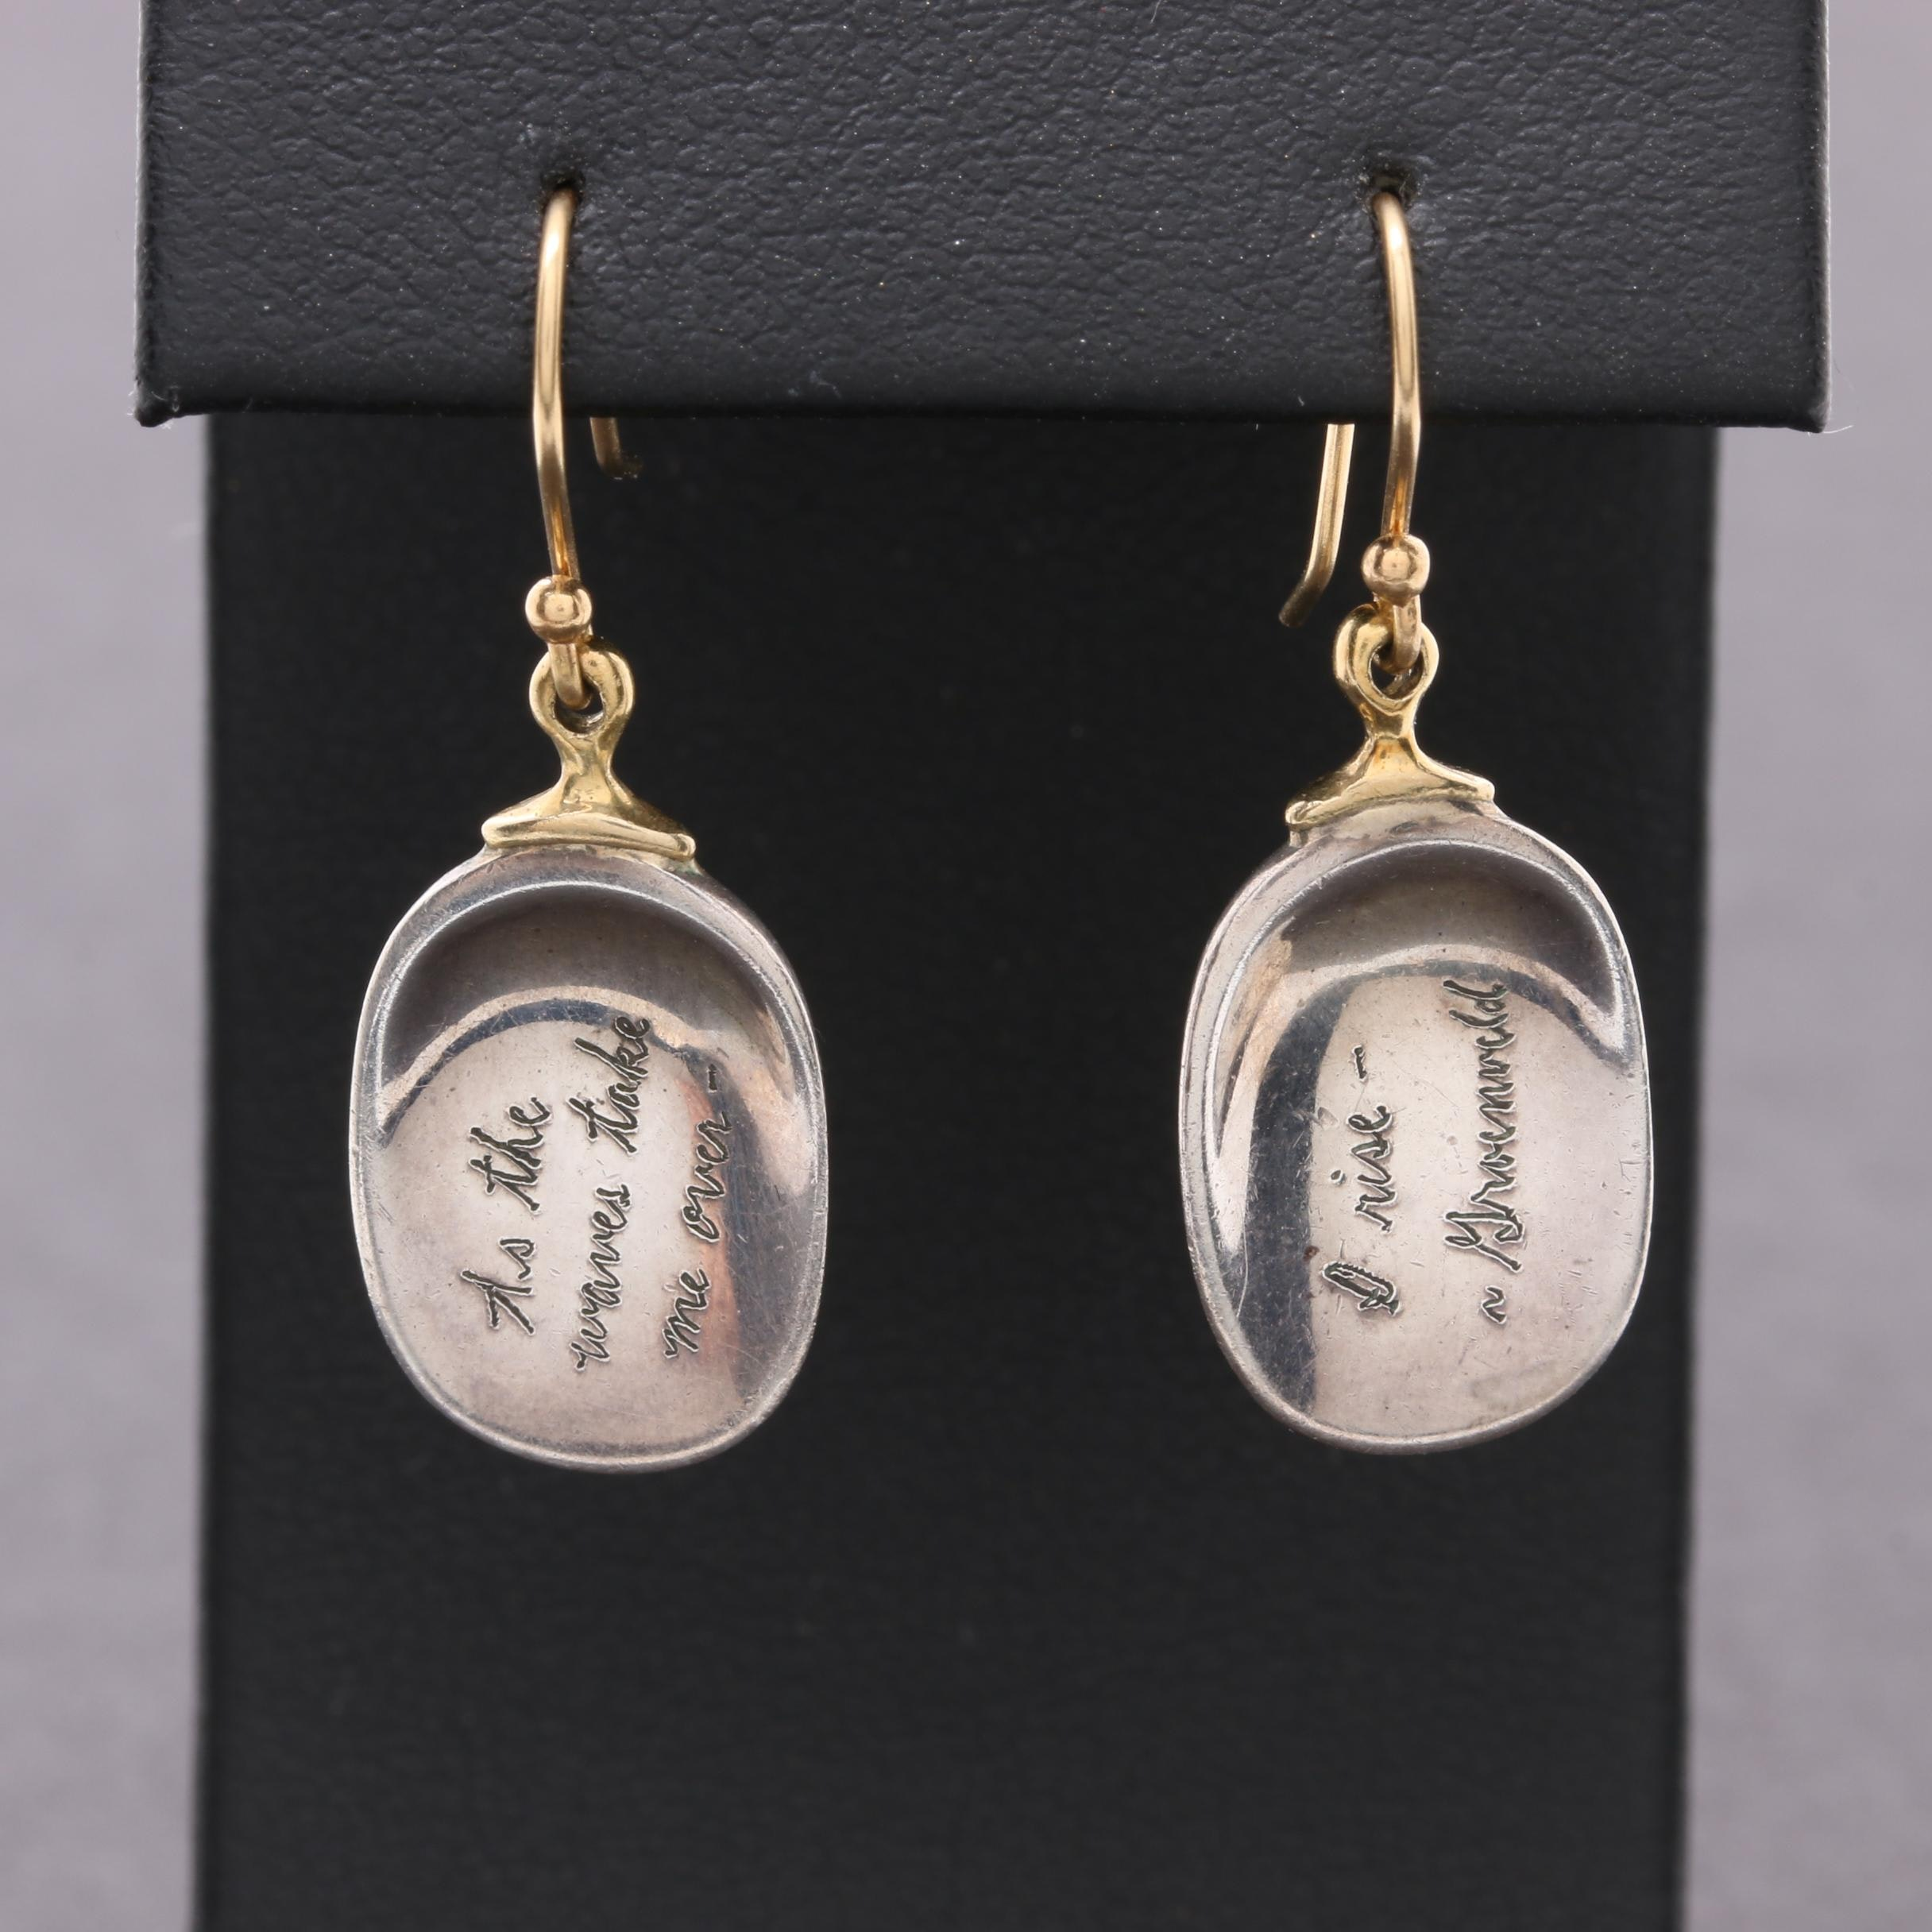 Jeanine Payer Sterling Silver and 18K Yellow Gold Earrings with Poetic Quote